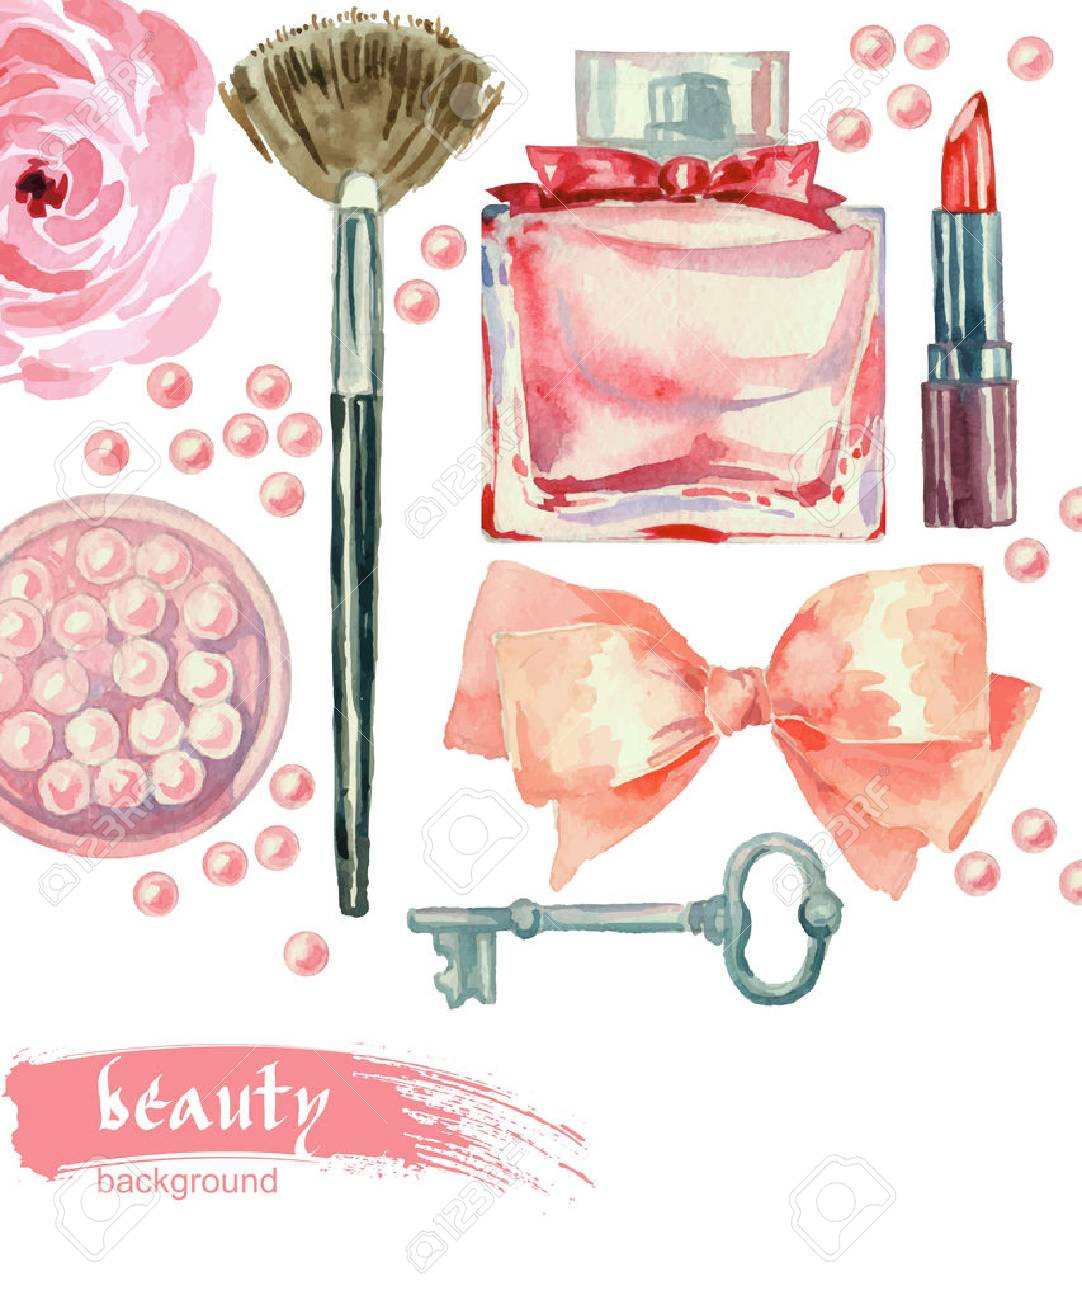 Watercolor fashion and cosmetics background with make up artist objects: lipstick, blush, bow, key, brushes. Vector beauty background Stock Vector - 51867386